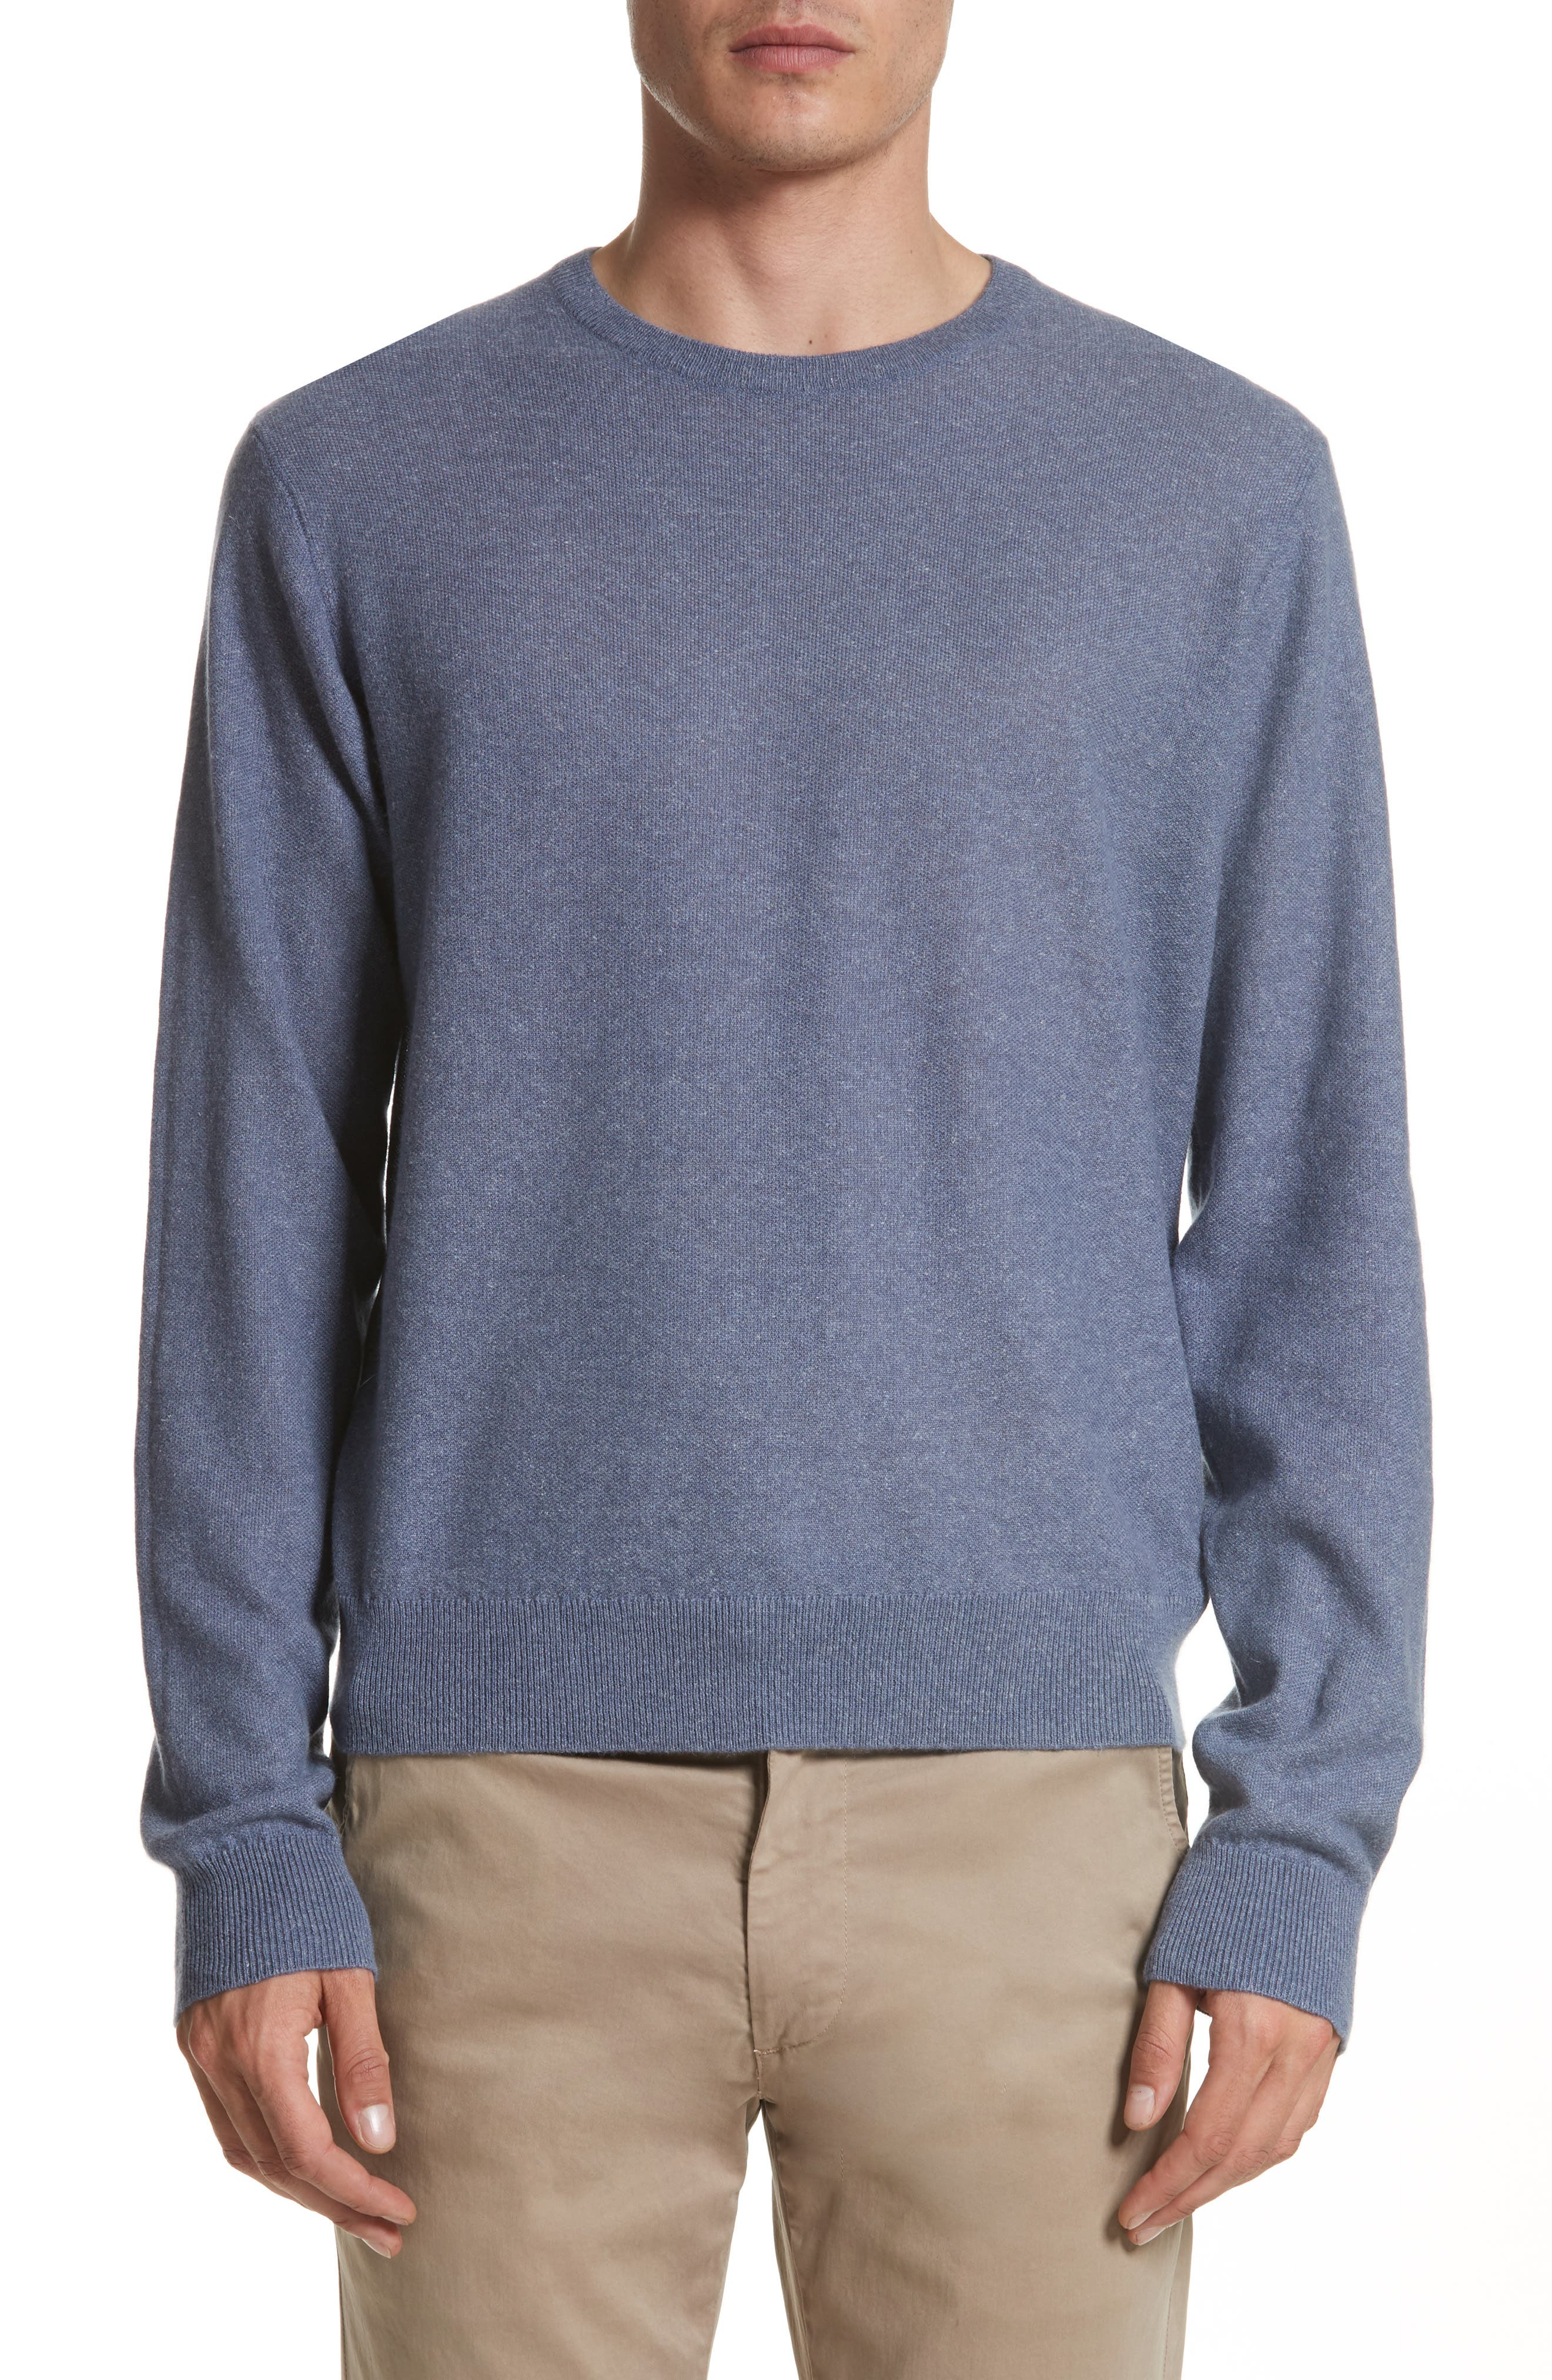 Cashmere & Linen Crewneck Sweater,                             Main thumbnail 1, color,                             475